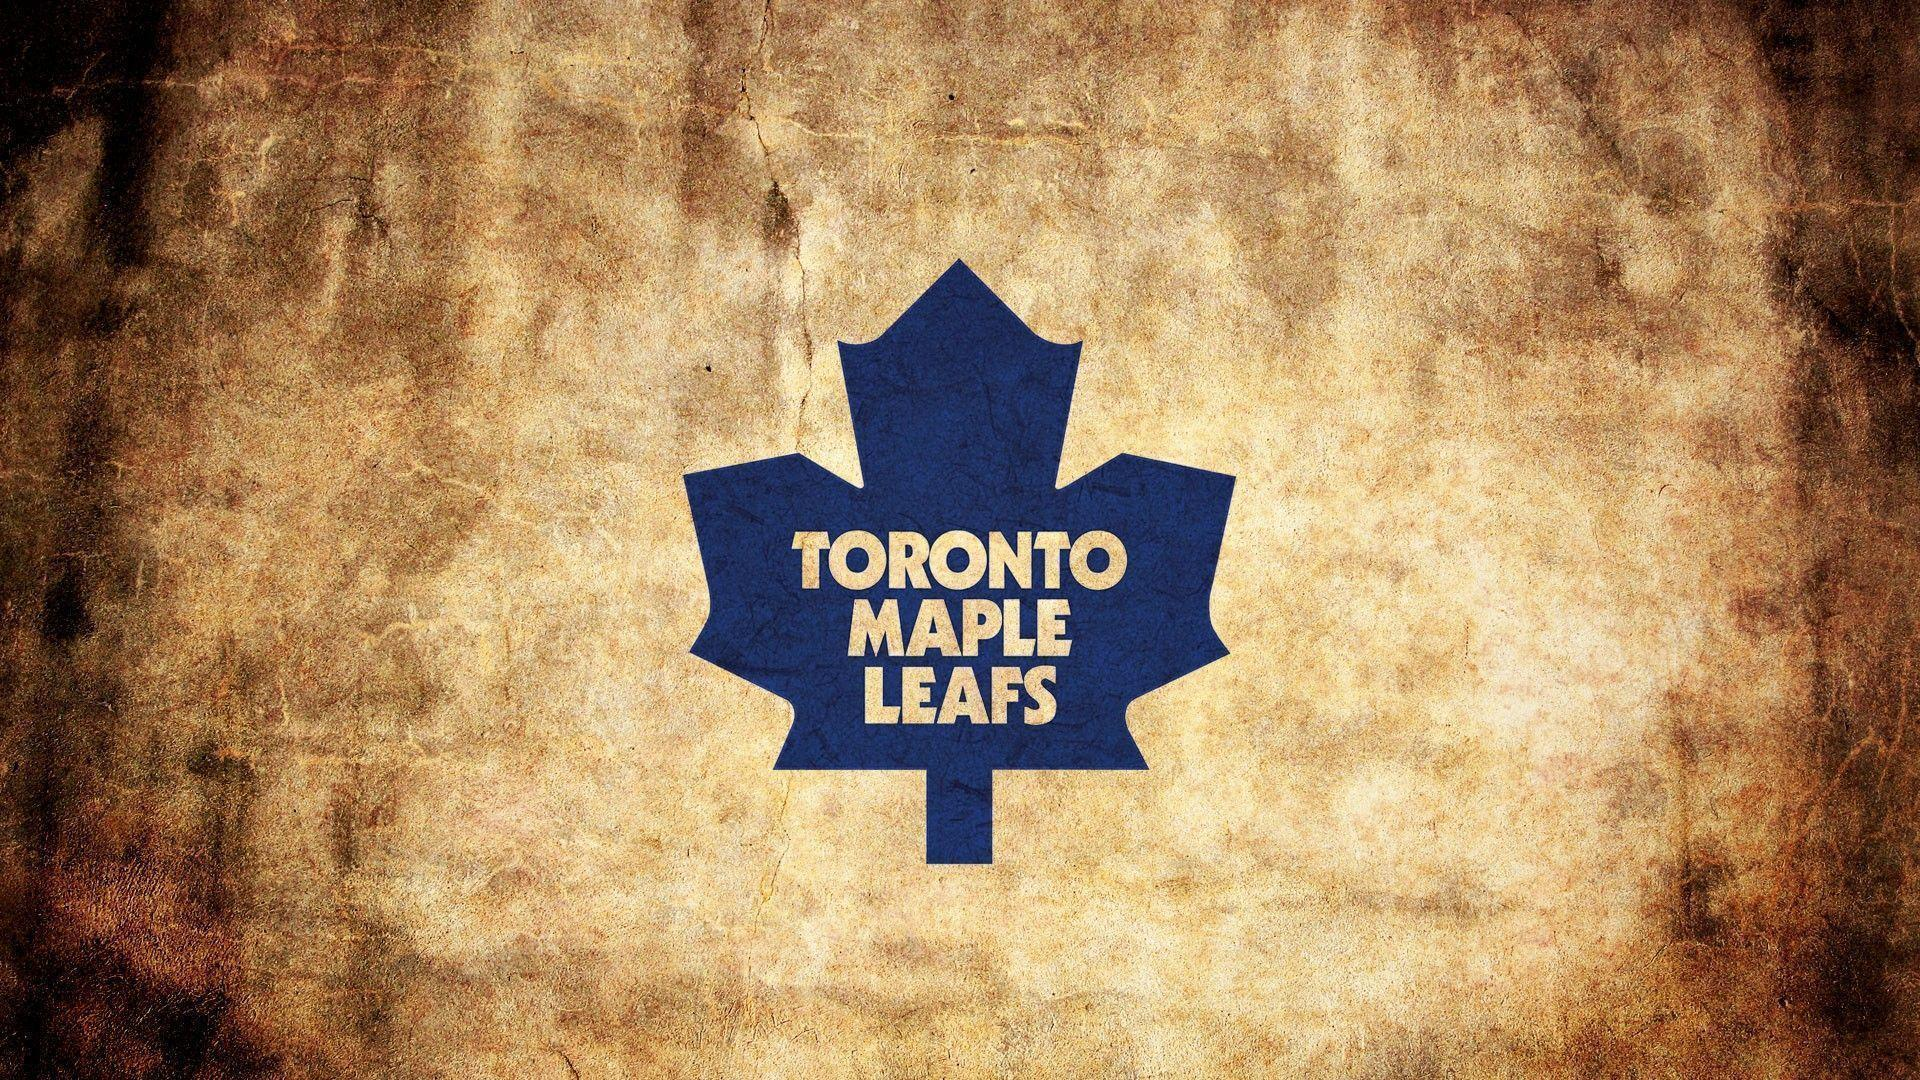 NHL Toronto Maple Leafs Logo wallpapers HD 2016 in Hockey